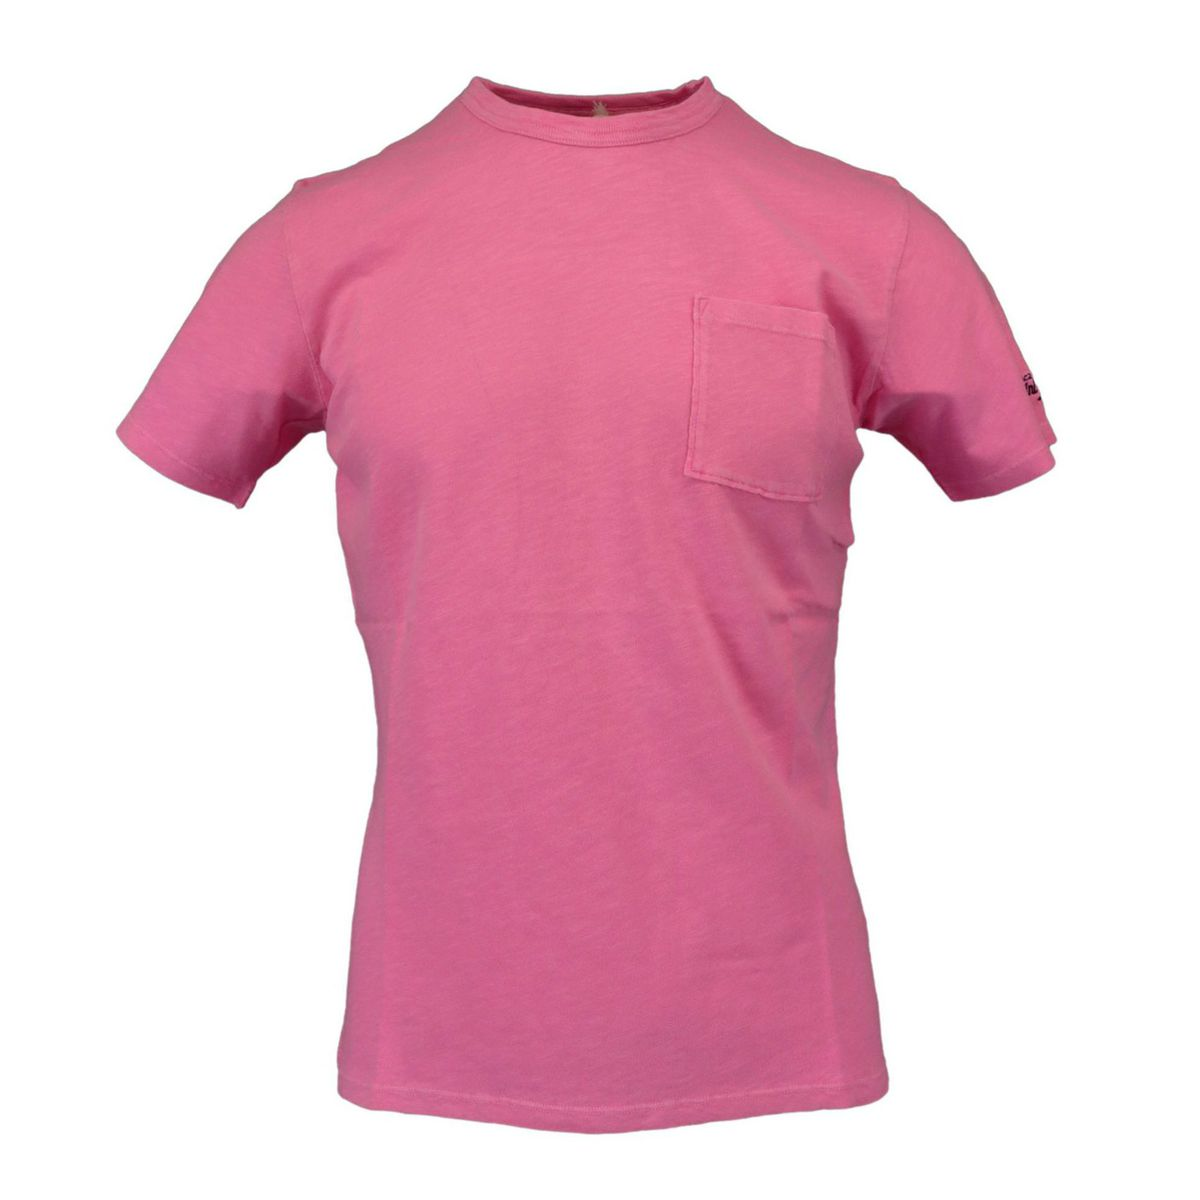 President T-shirt with pocket Rosa fluo MC2 Saint Barth